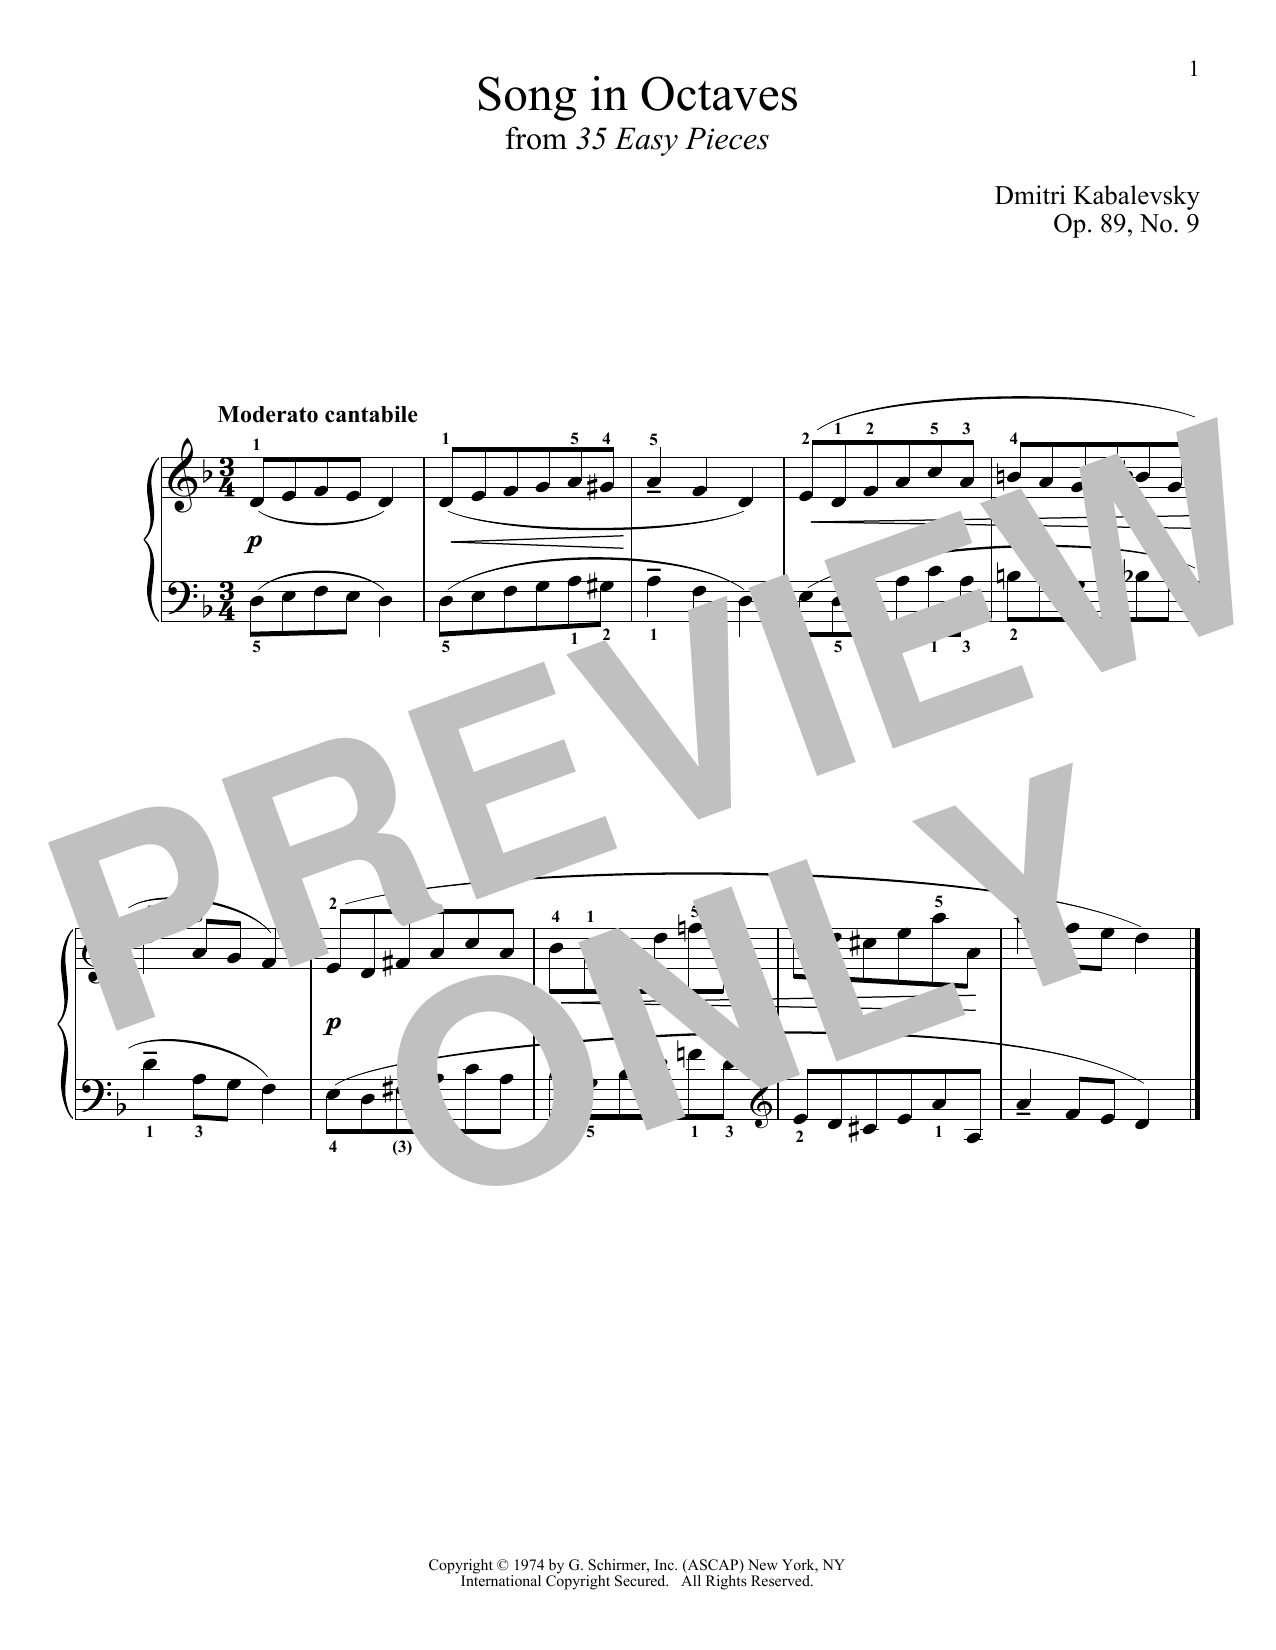 Dmitri Kabalevsky Song In Octaves sheet music notes and chords. Download Printable PDF.